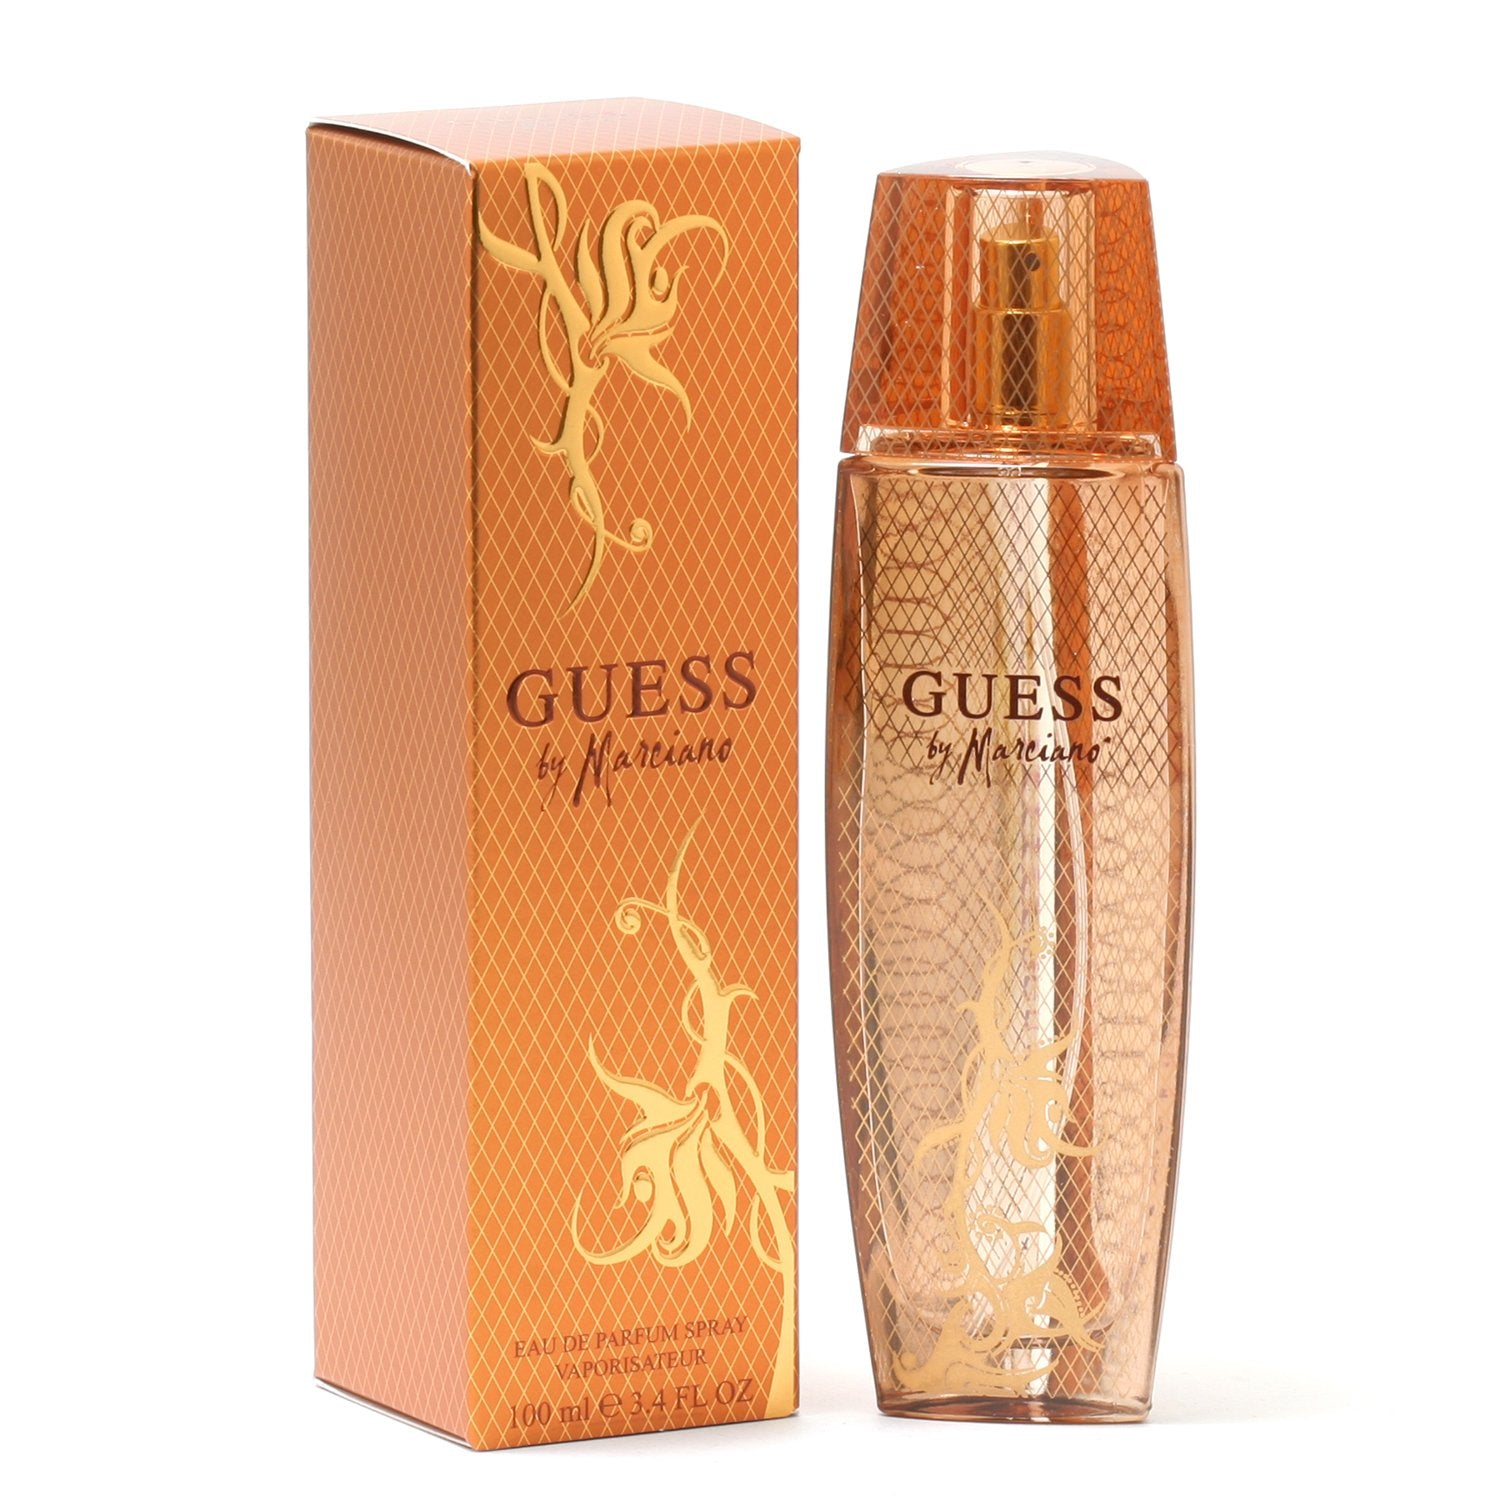 Perfume - GUESS MARCIANO FOR WOMEN - EAU DE PARFUM SPRAY, 3.4 OZ